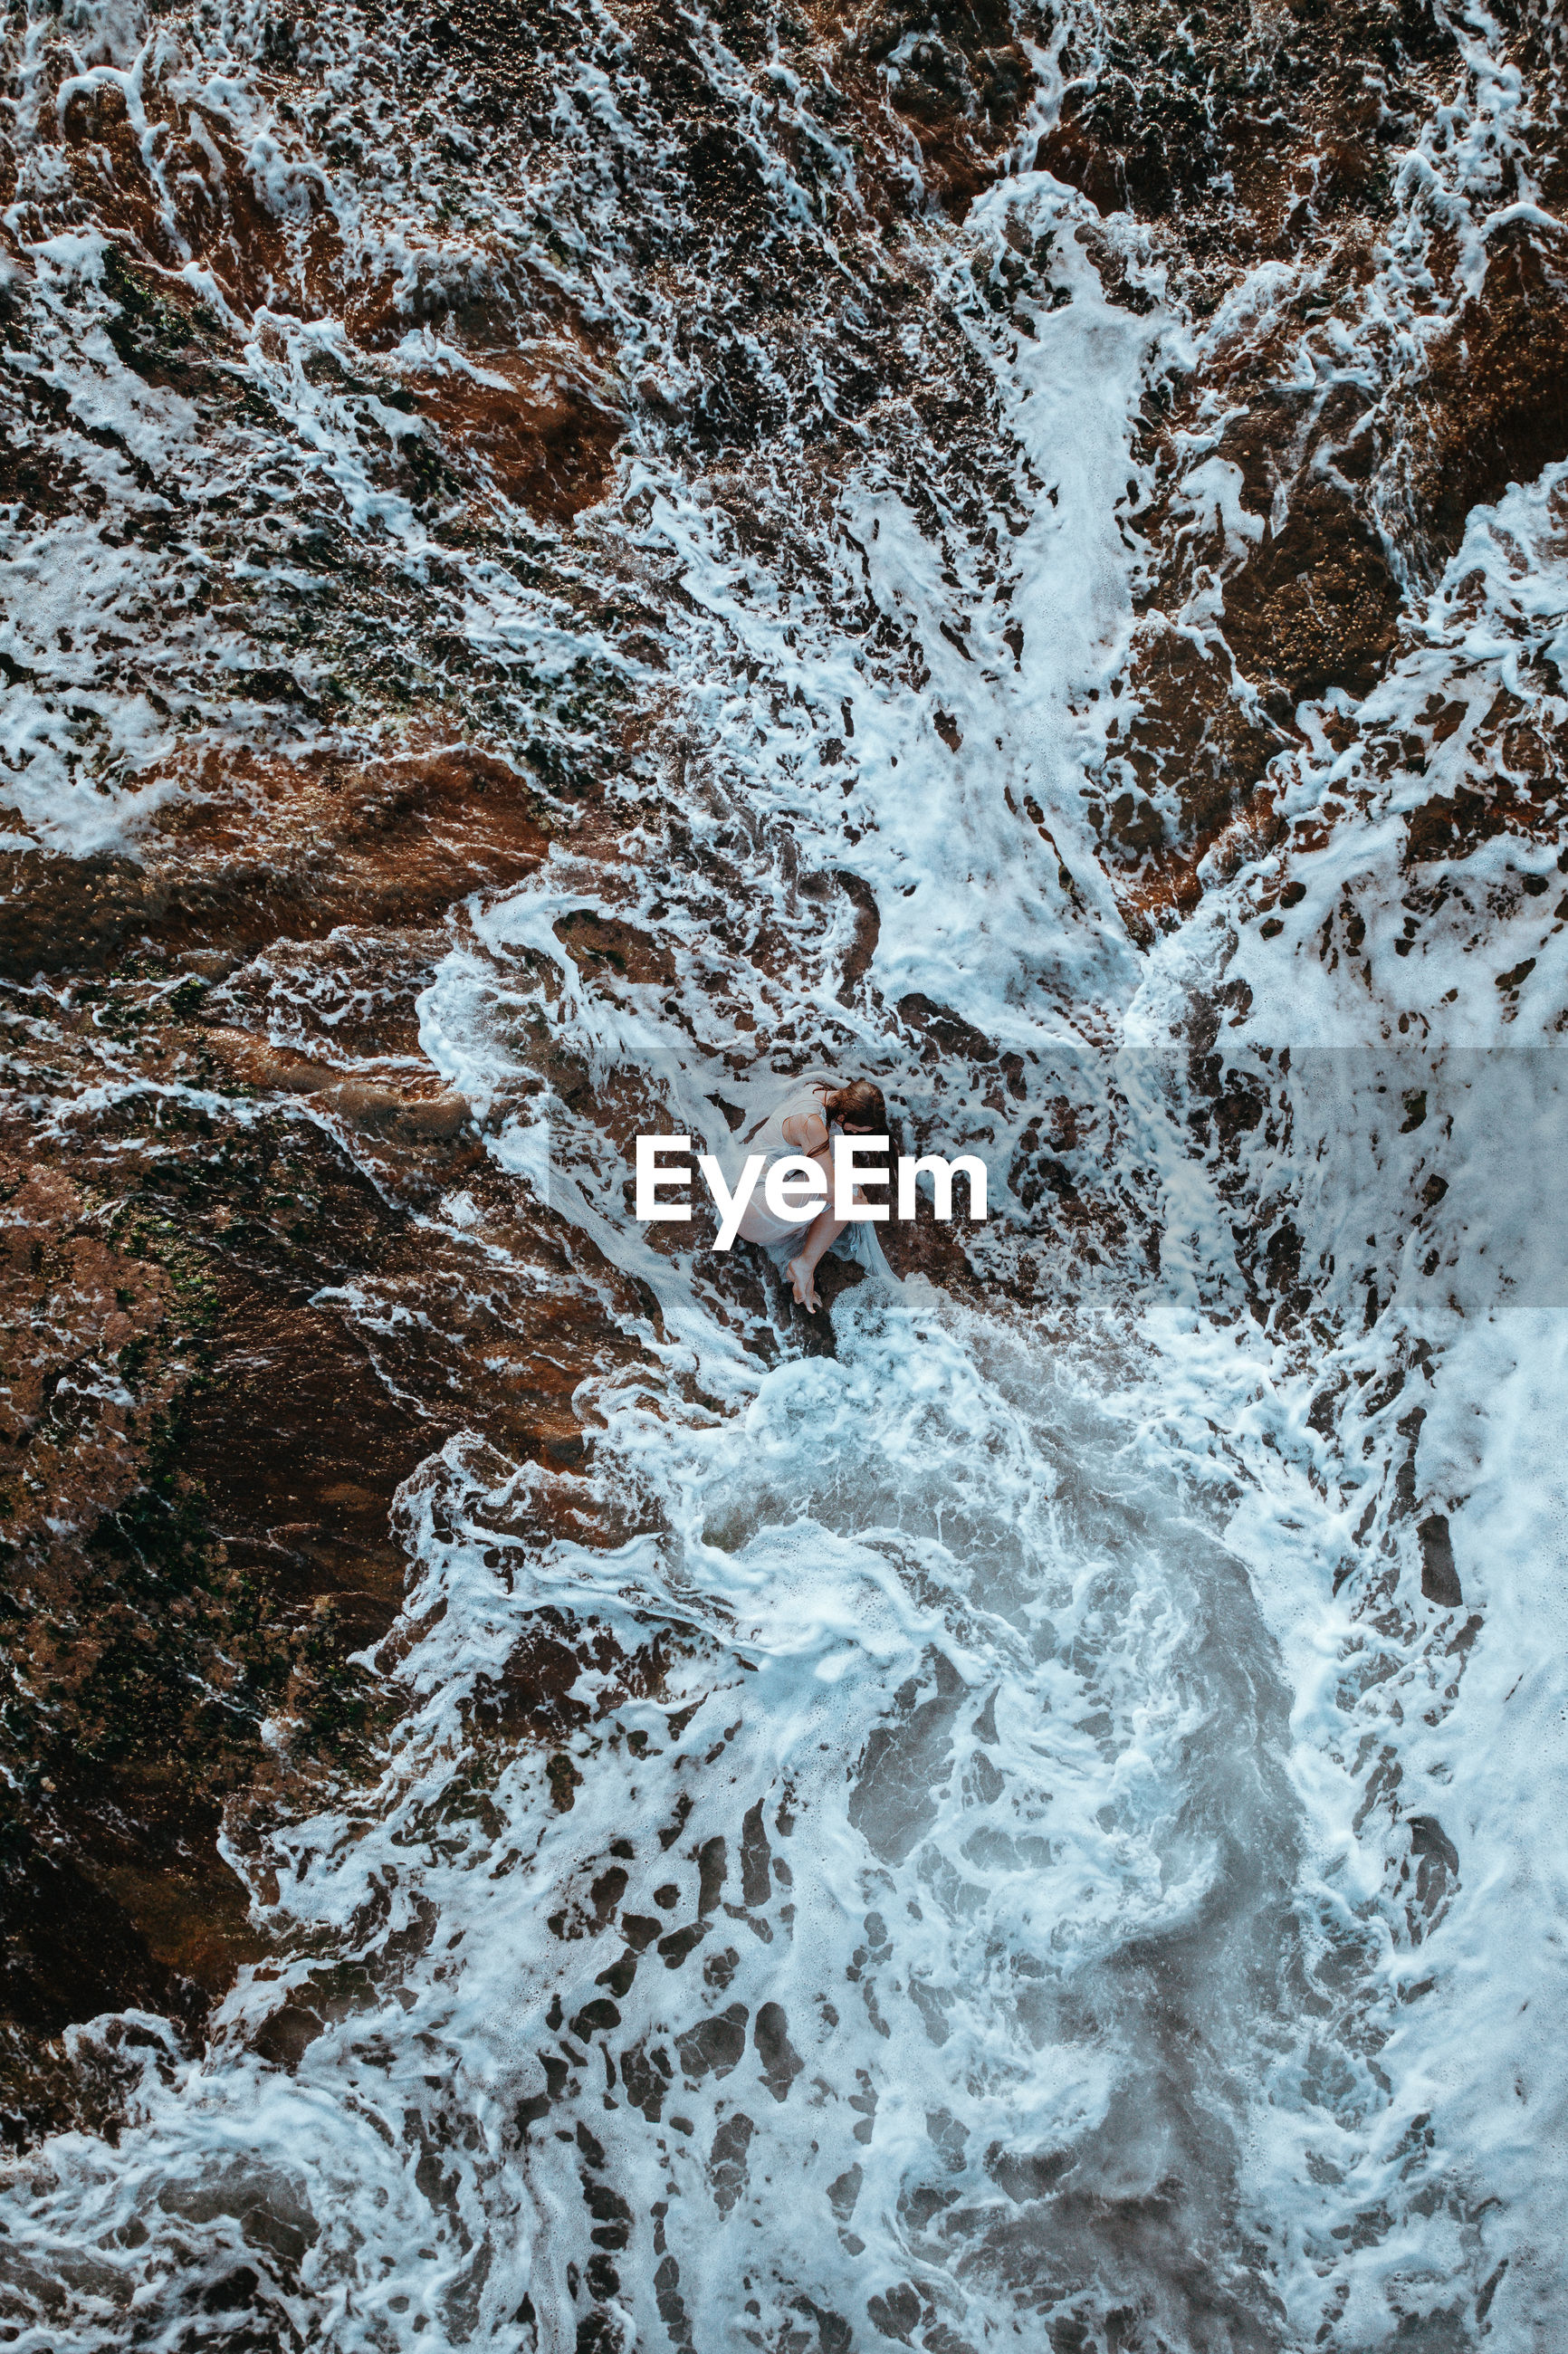 HIGH ANGLE VIEW OF WATER FLOWING OVER ROCKS